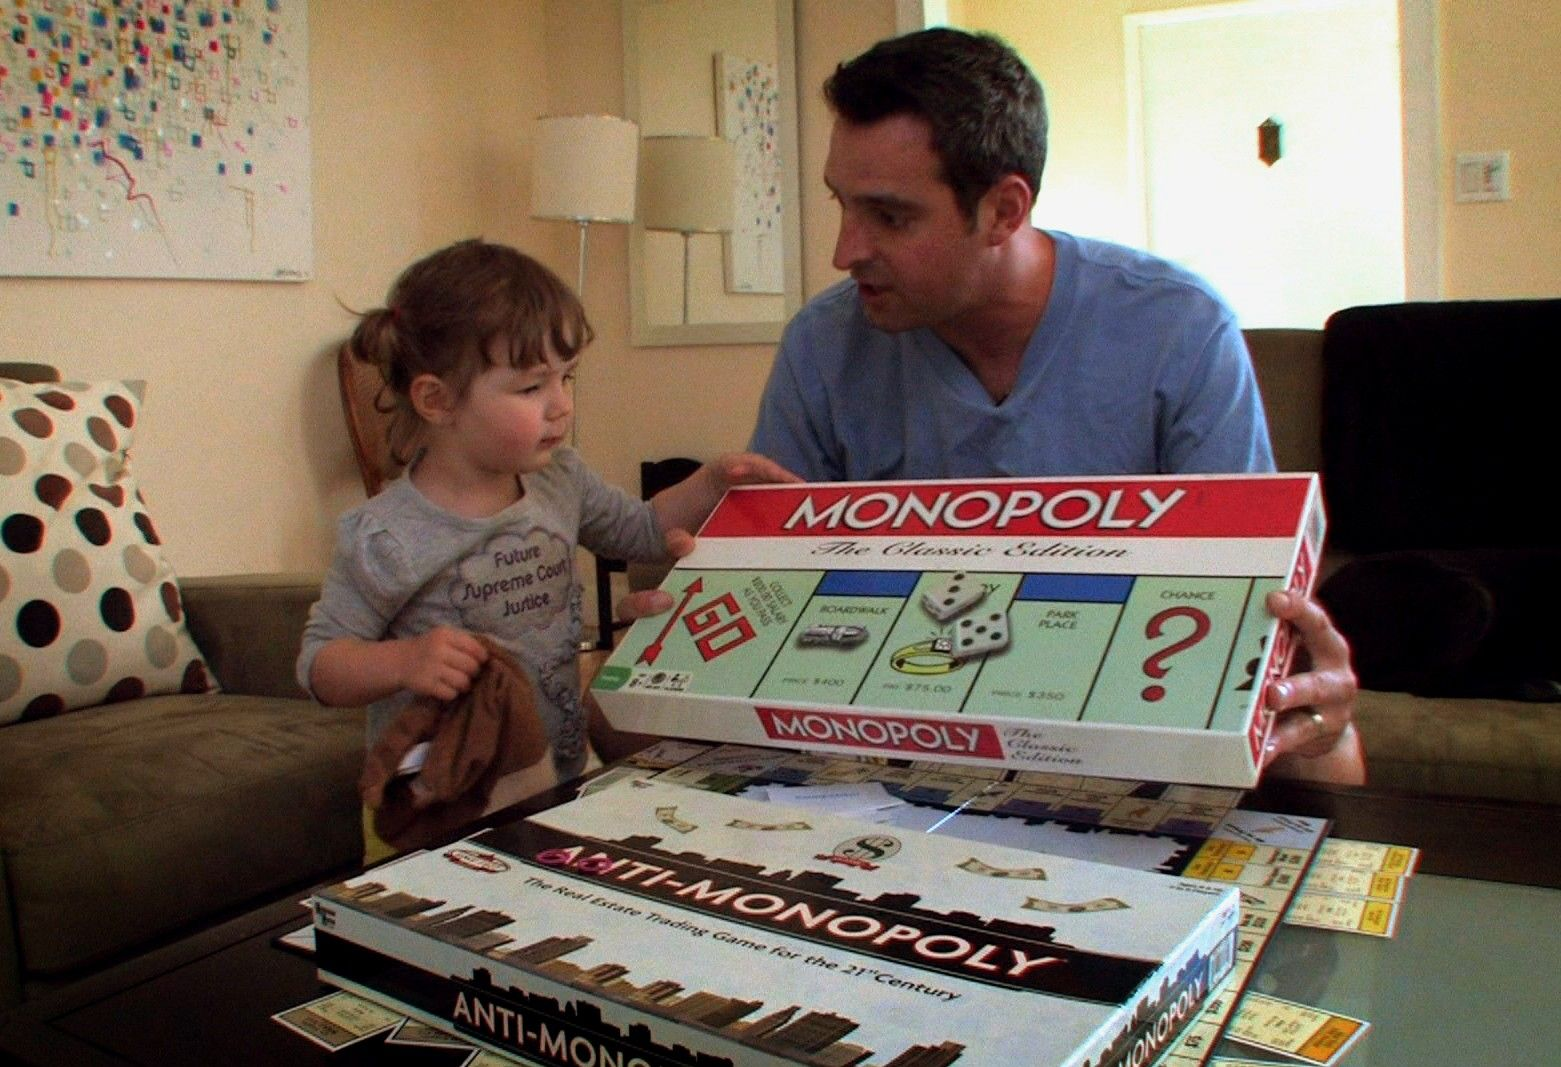 Monopoly - Pay 2 Play